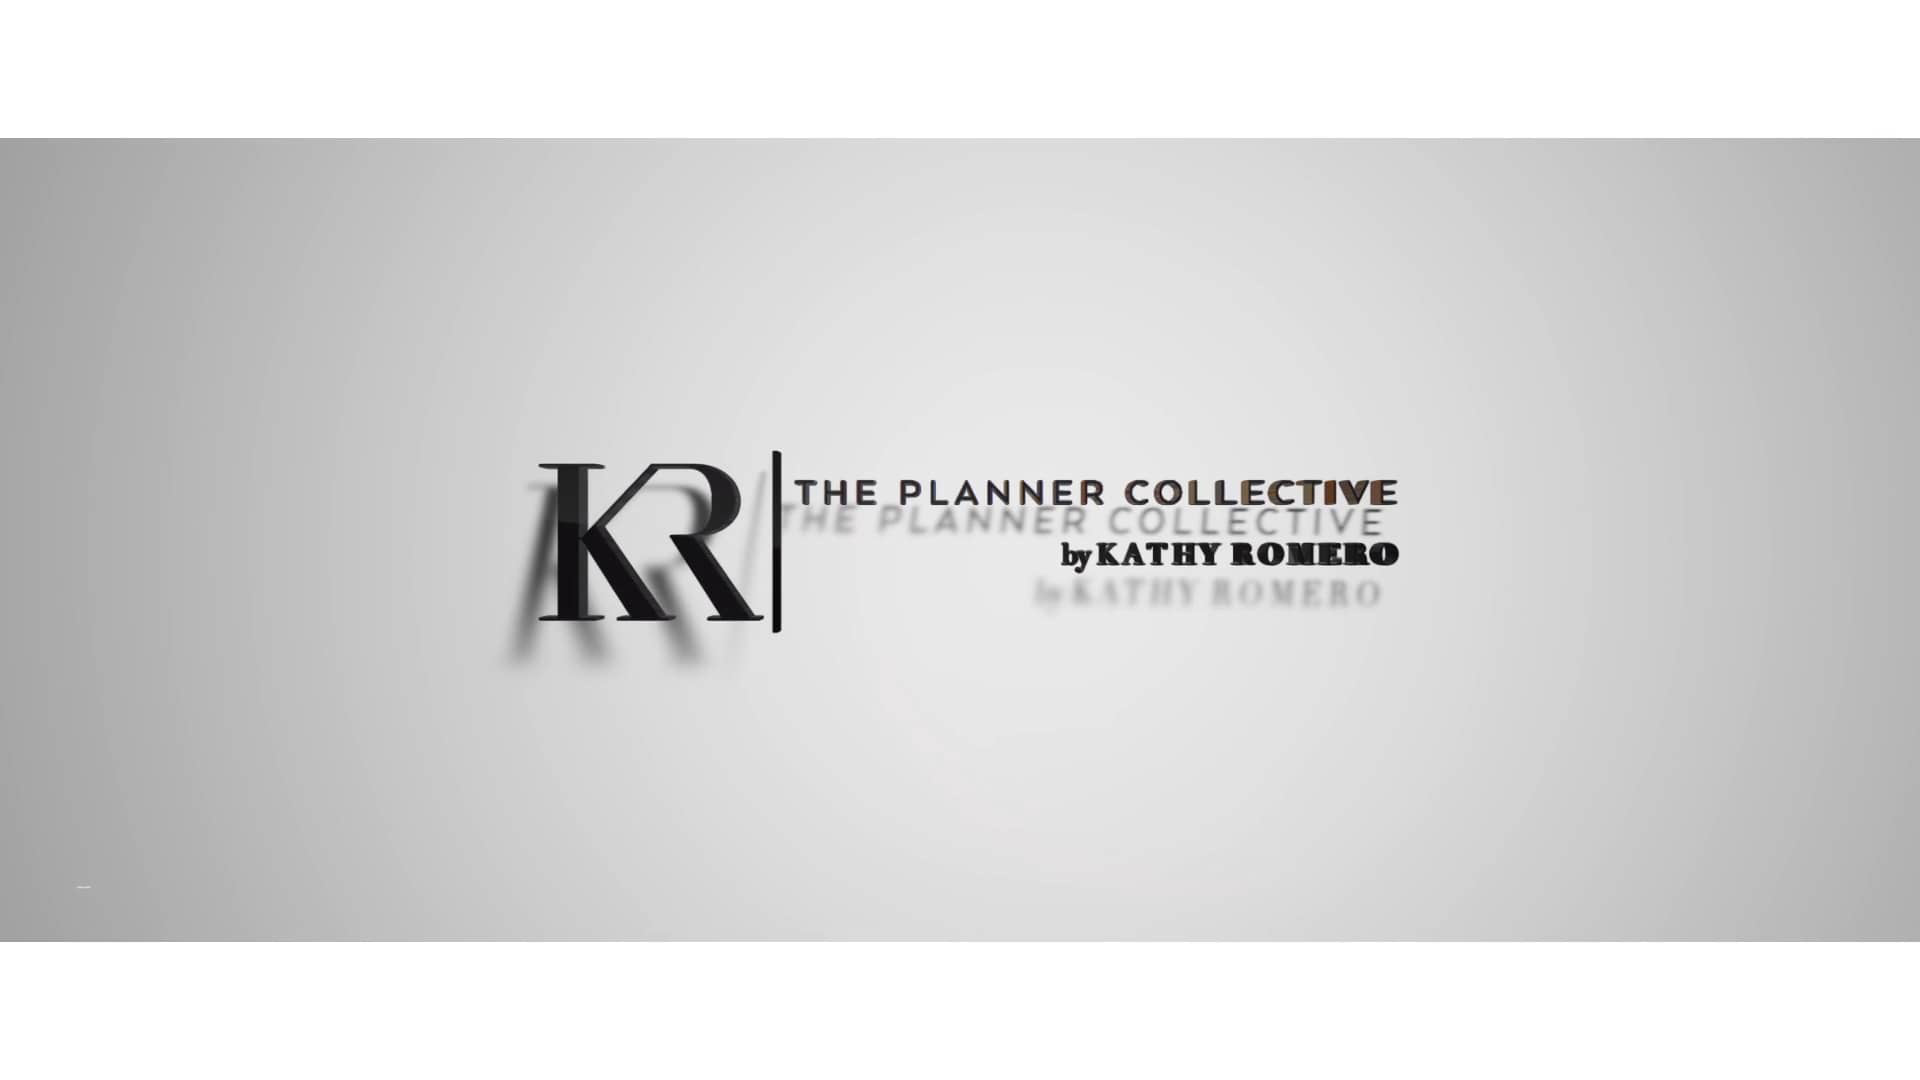 The KR Planner Collective: Event Planning Workshop - Kathy Romero Weddings and Events